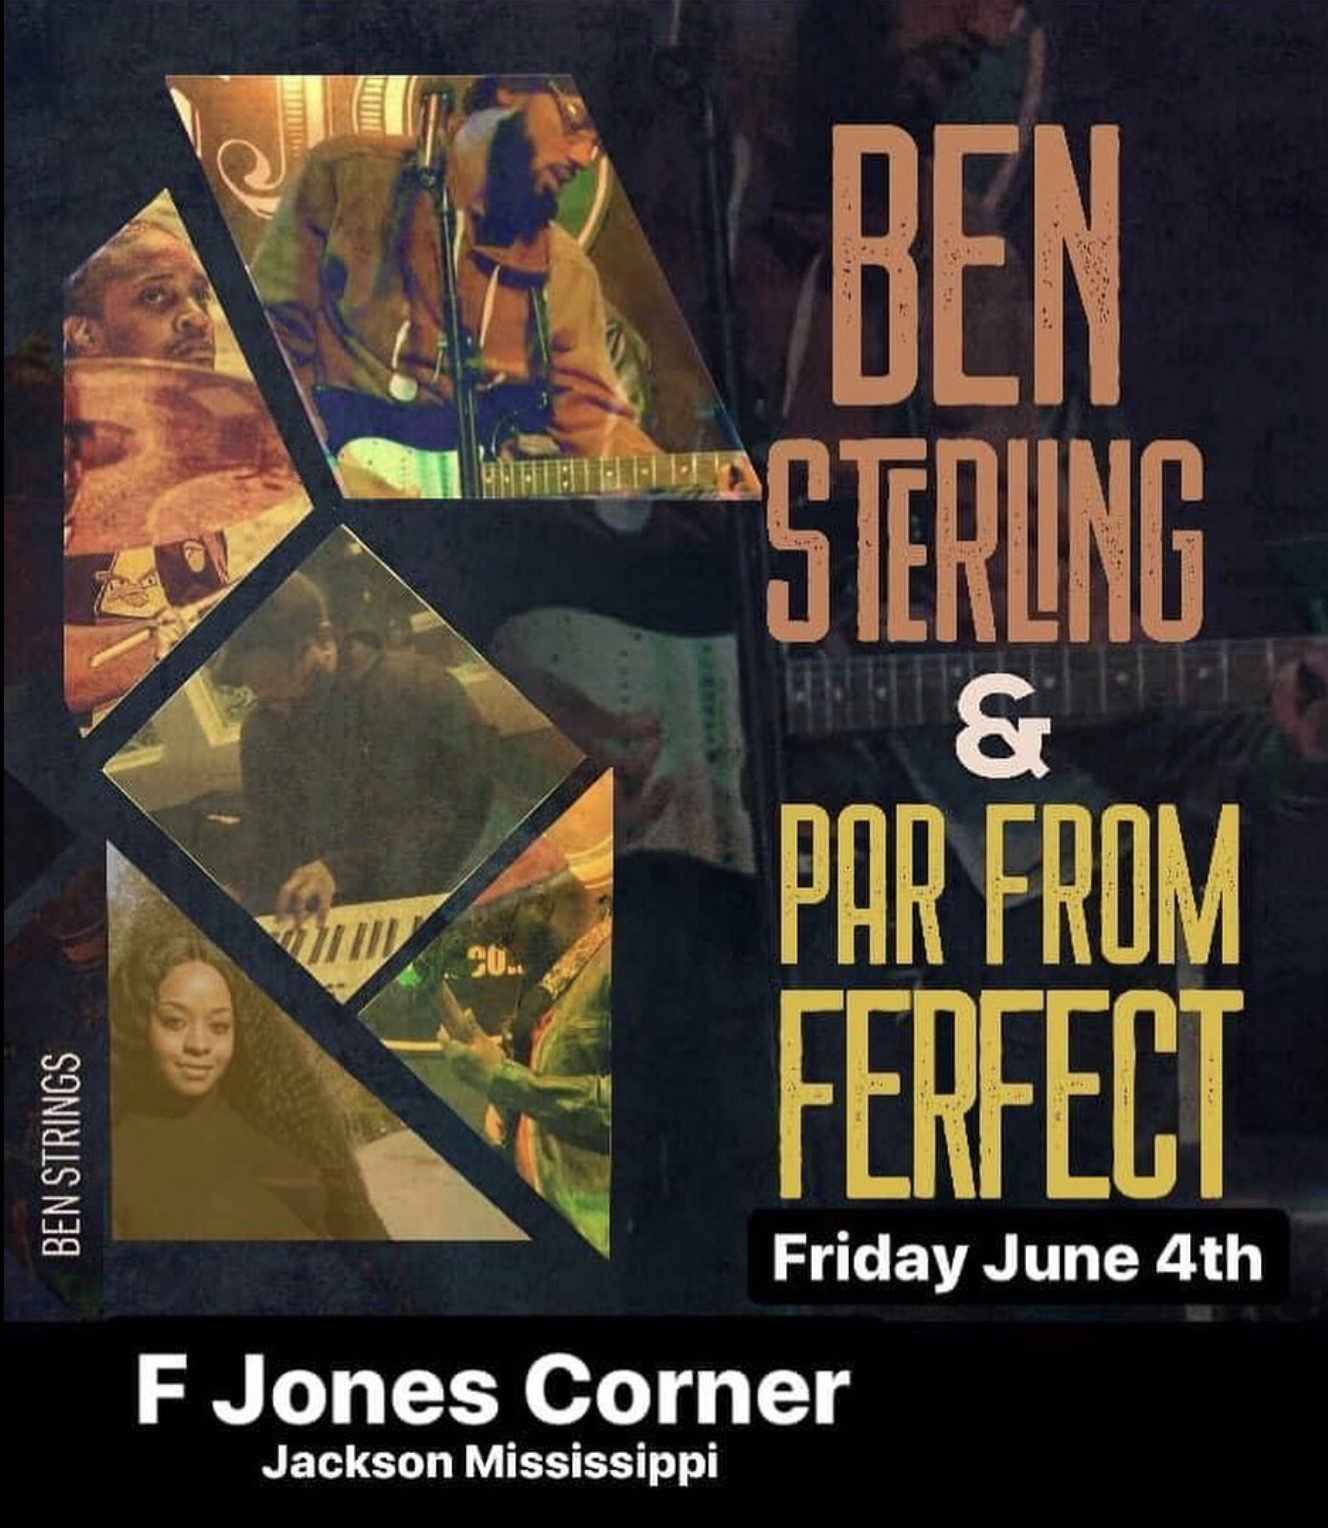 Ben Sterling + Par From Perfect LIVE MUSIC